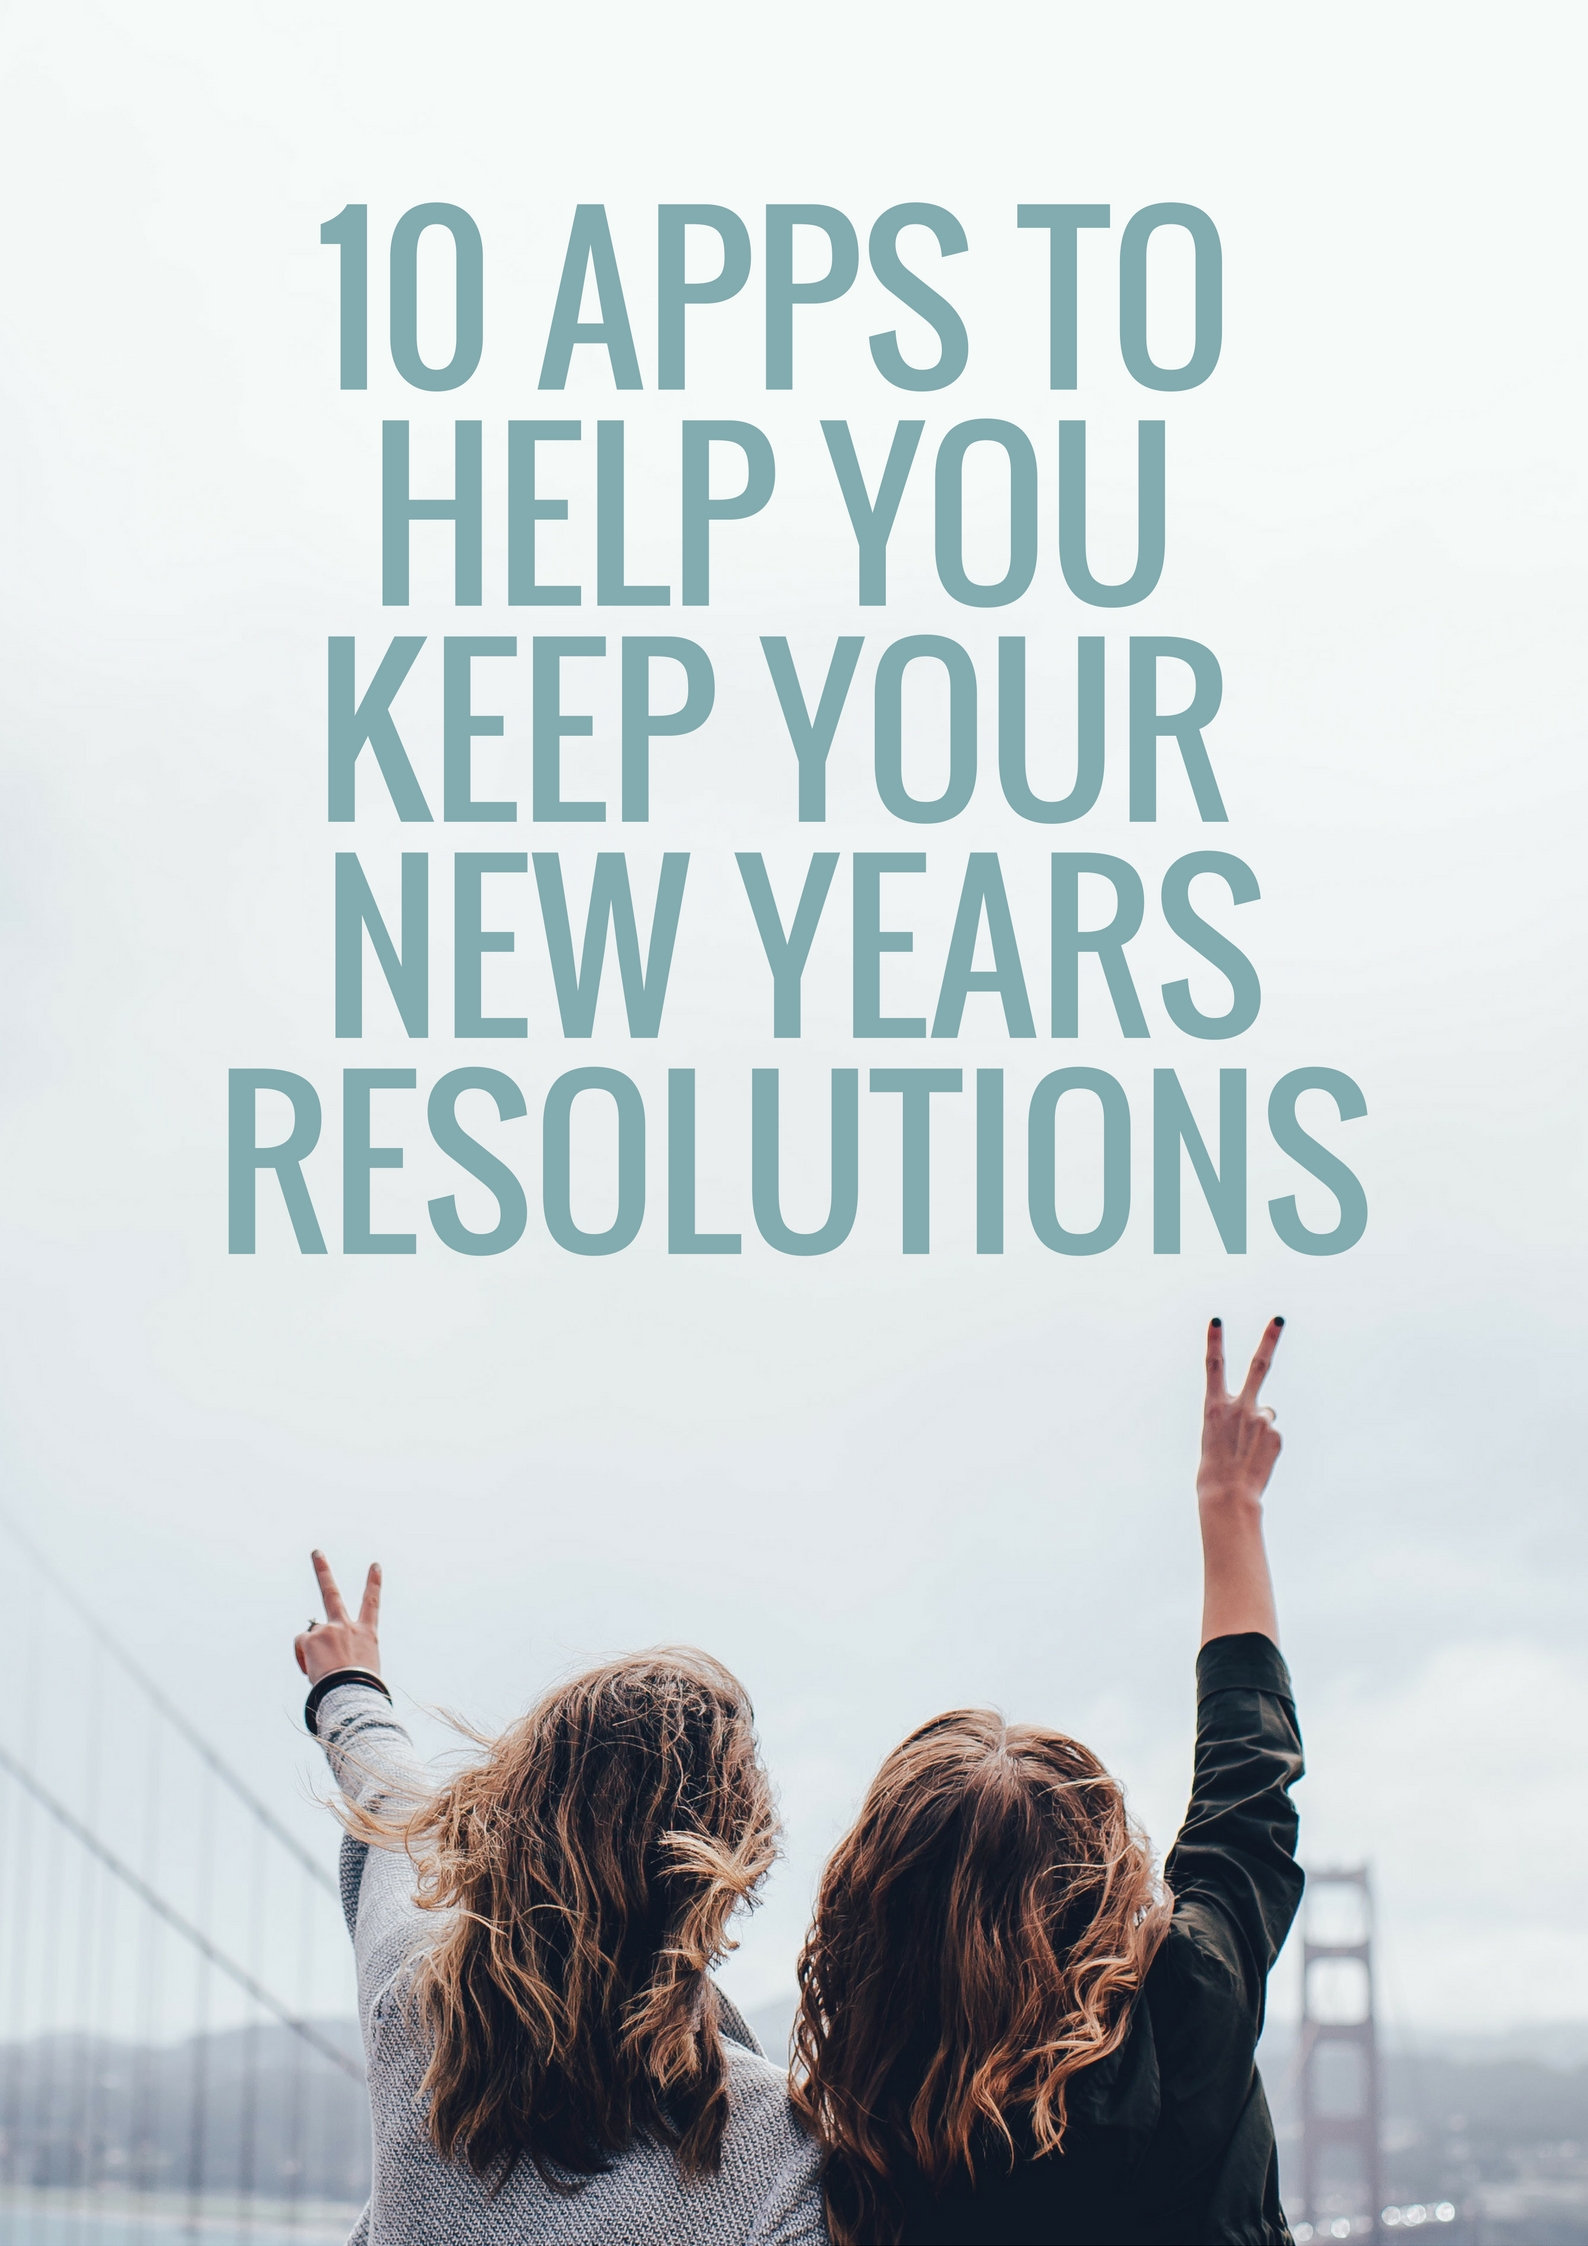 Apps to Help You Keep Your New Years Resolutions